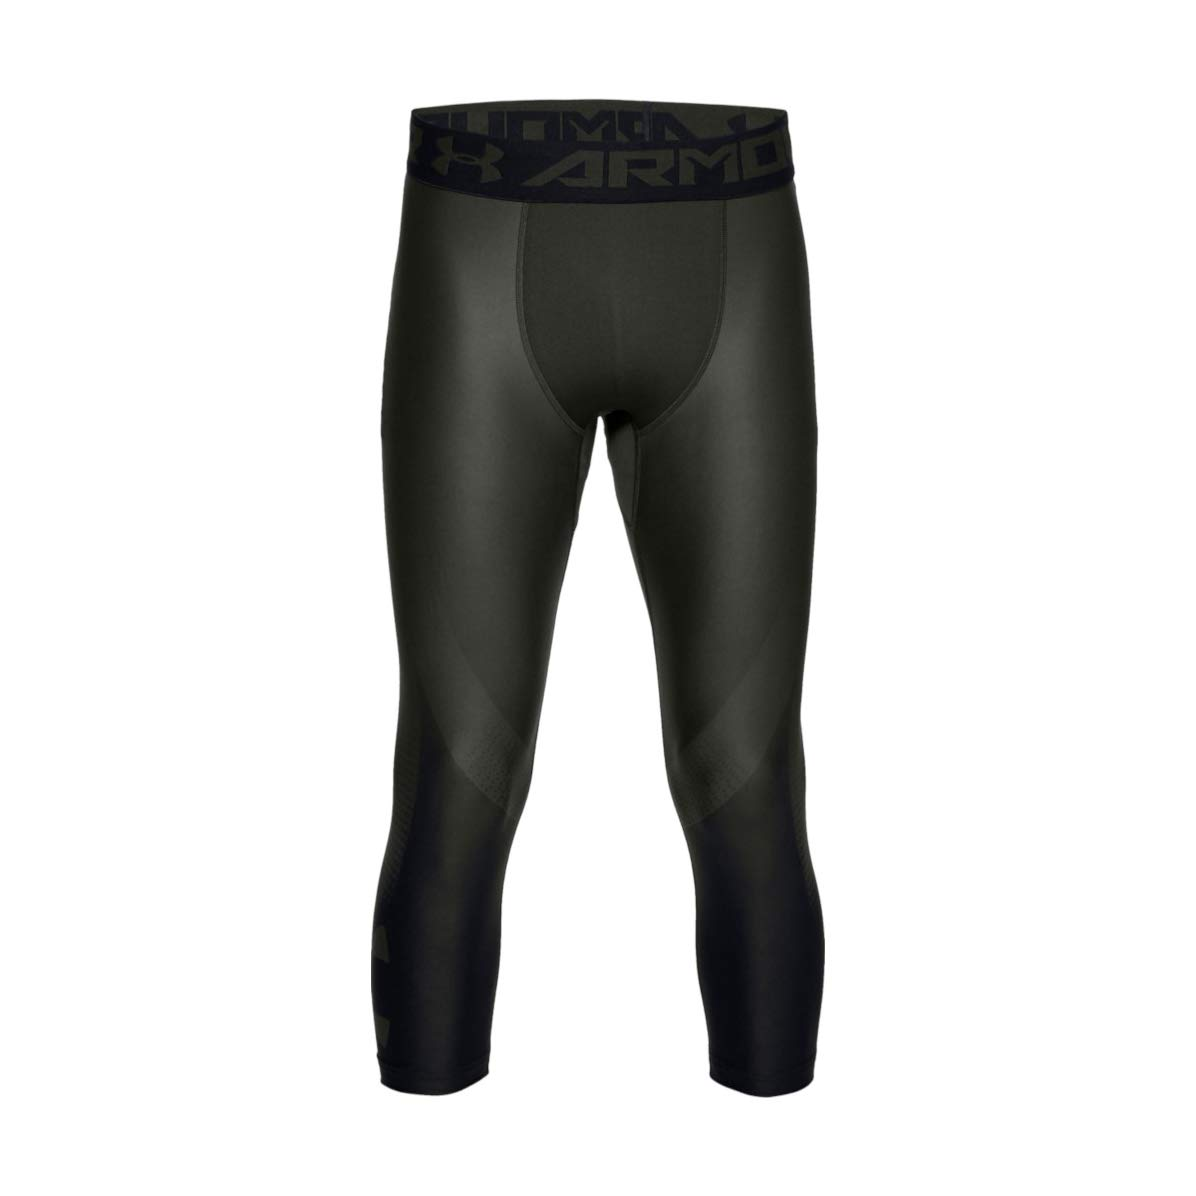 Under Armour Men's Hg Armour2.0 3/4 Nov Legging